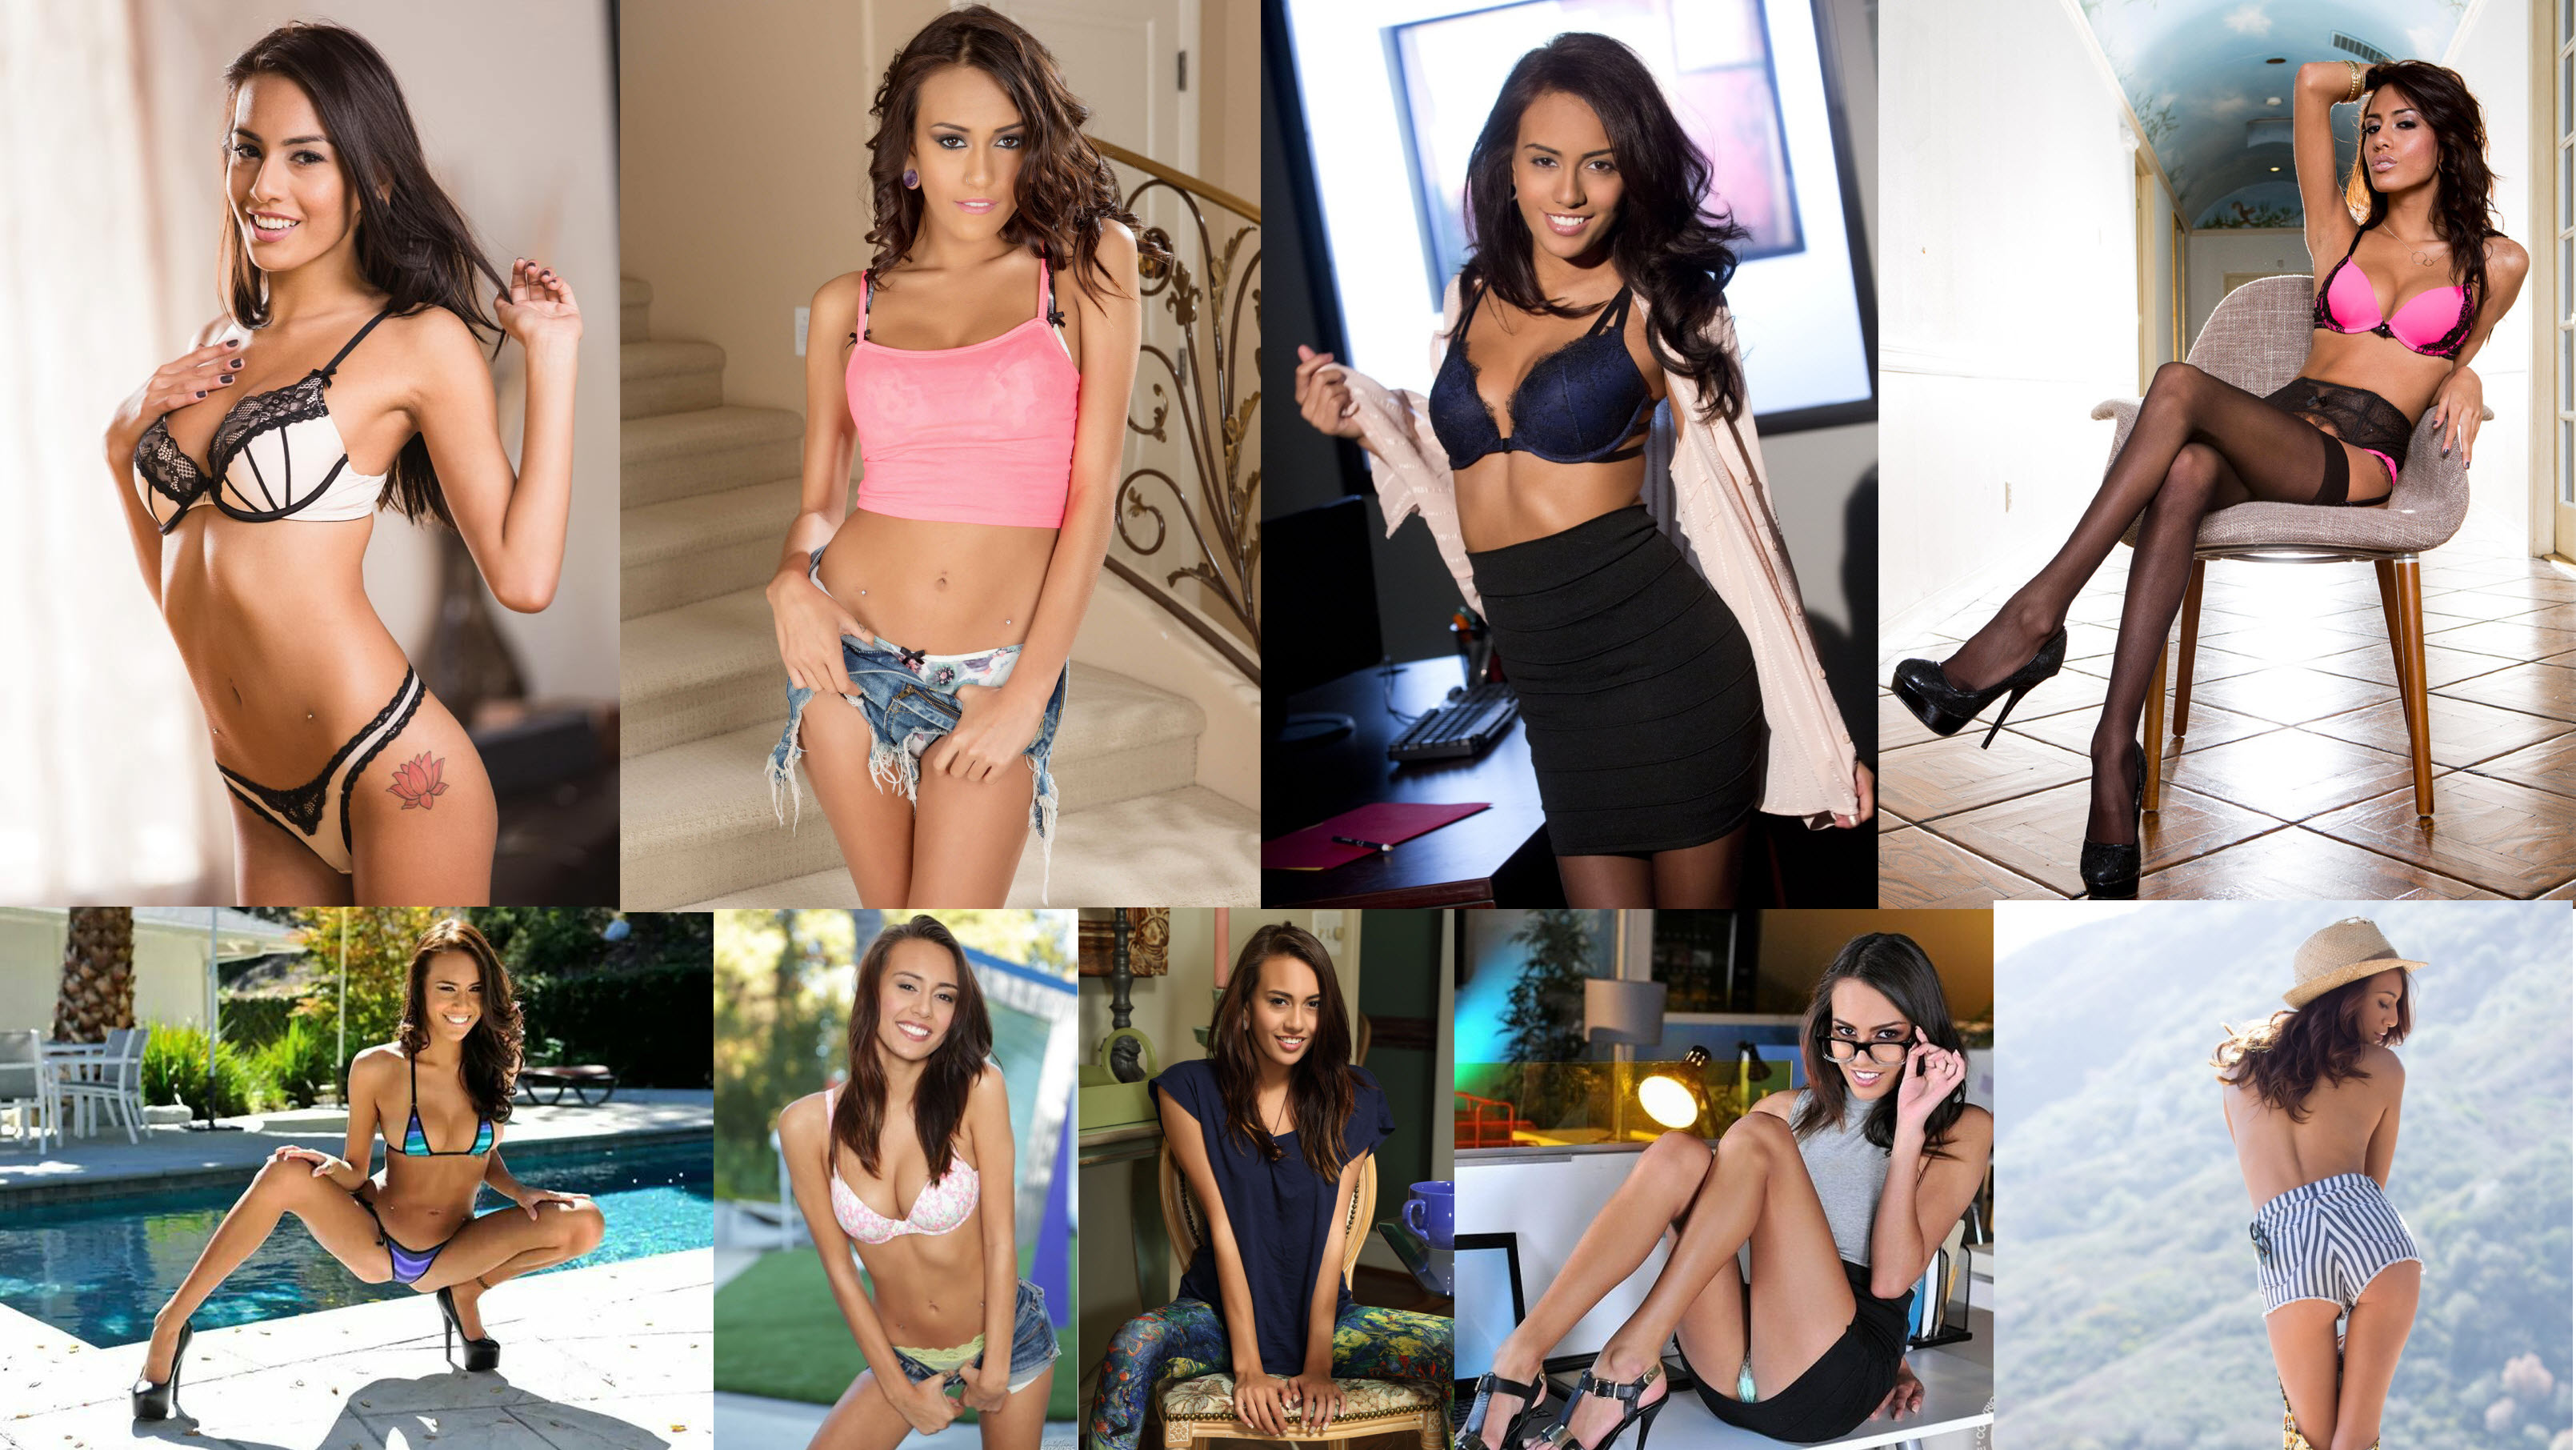 Janice griffith jenna ross